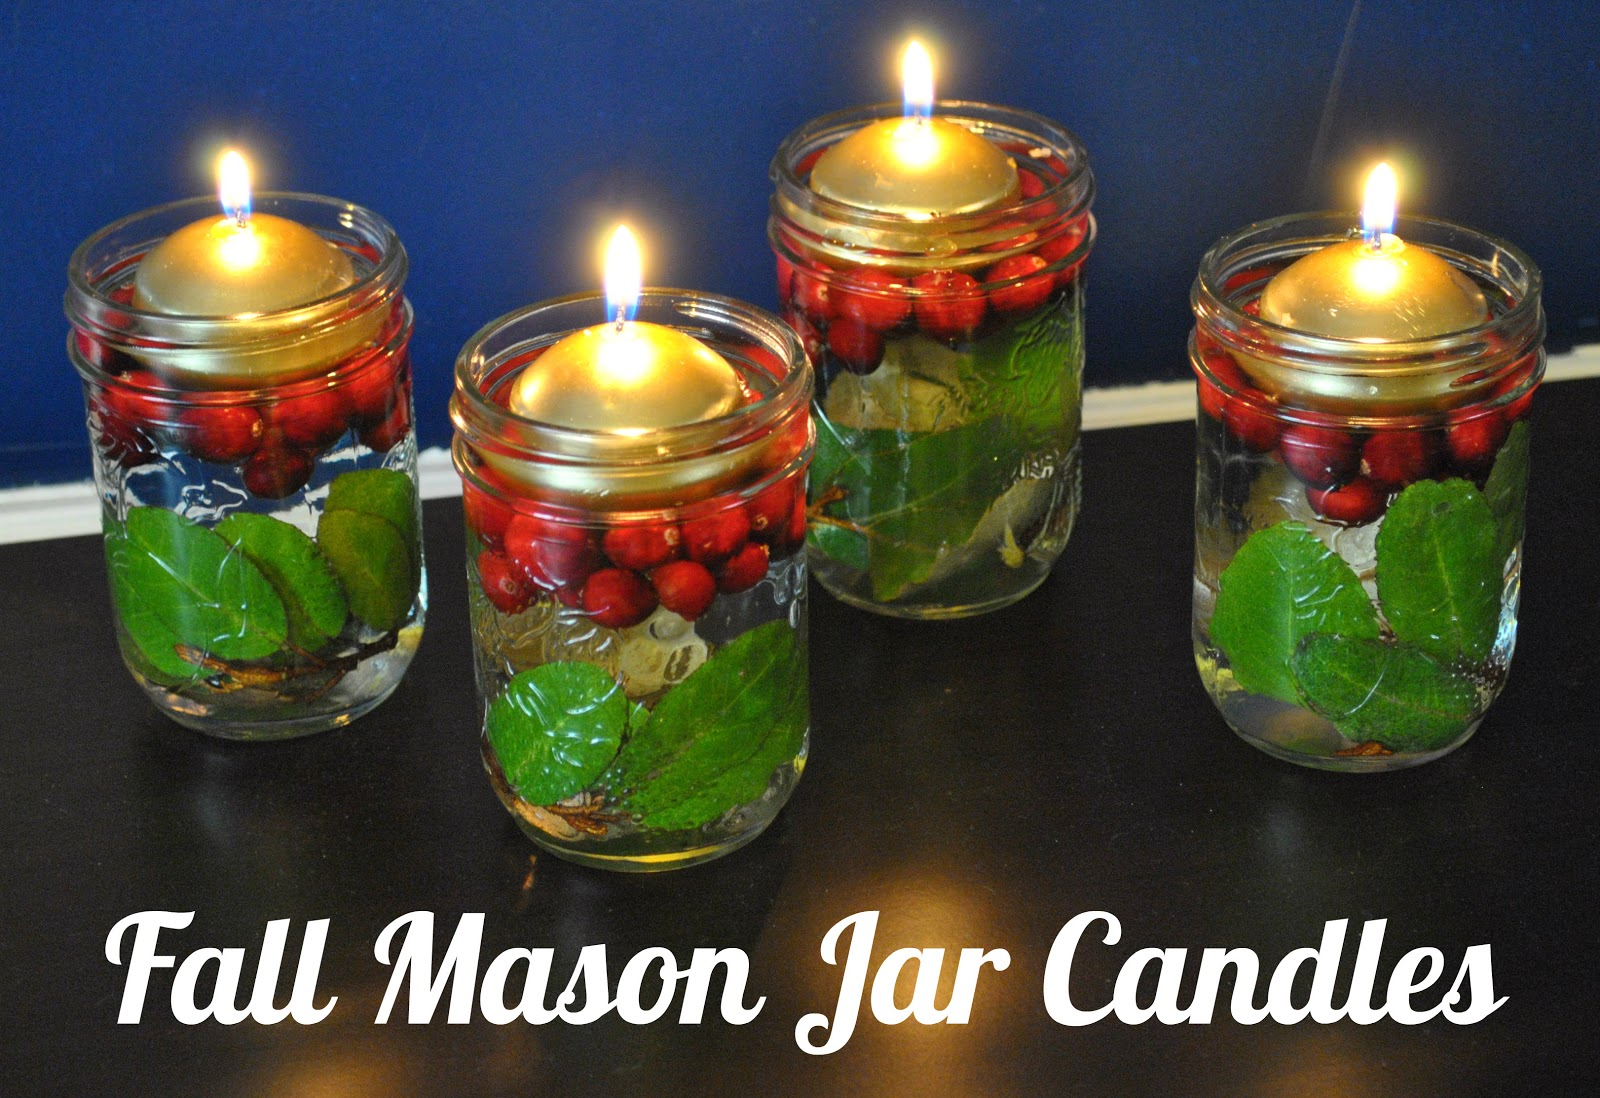 Http Www Lifewith4boys Com 2012 11 Diy Home Decor Fall Mason Jar Candle Html